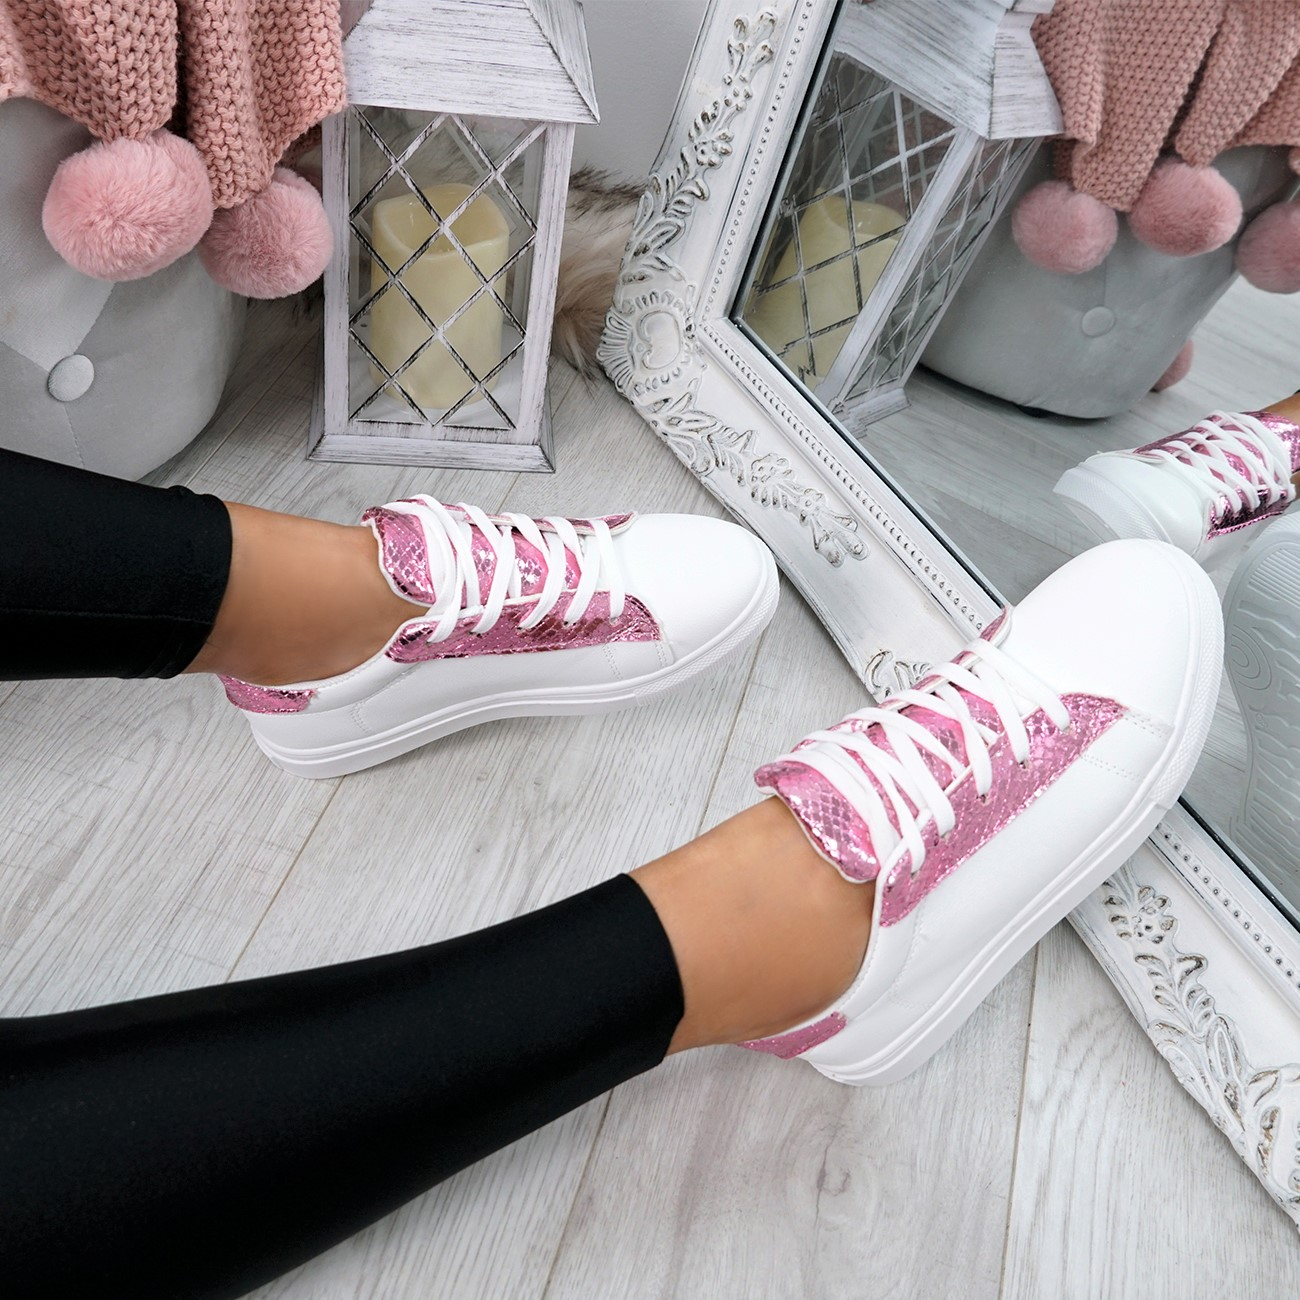 WOMENS-LADIES-SNAKE-SKIN-GLITTER-LACE-UP-TRAINERS-PLIMSOLLS-SNEAKERS-SHOES thumbnail 20